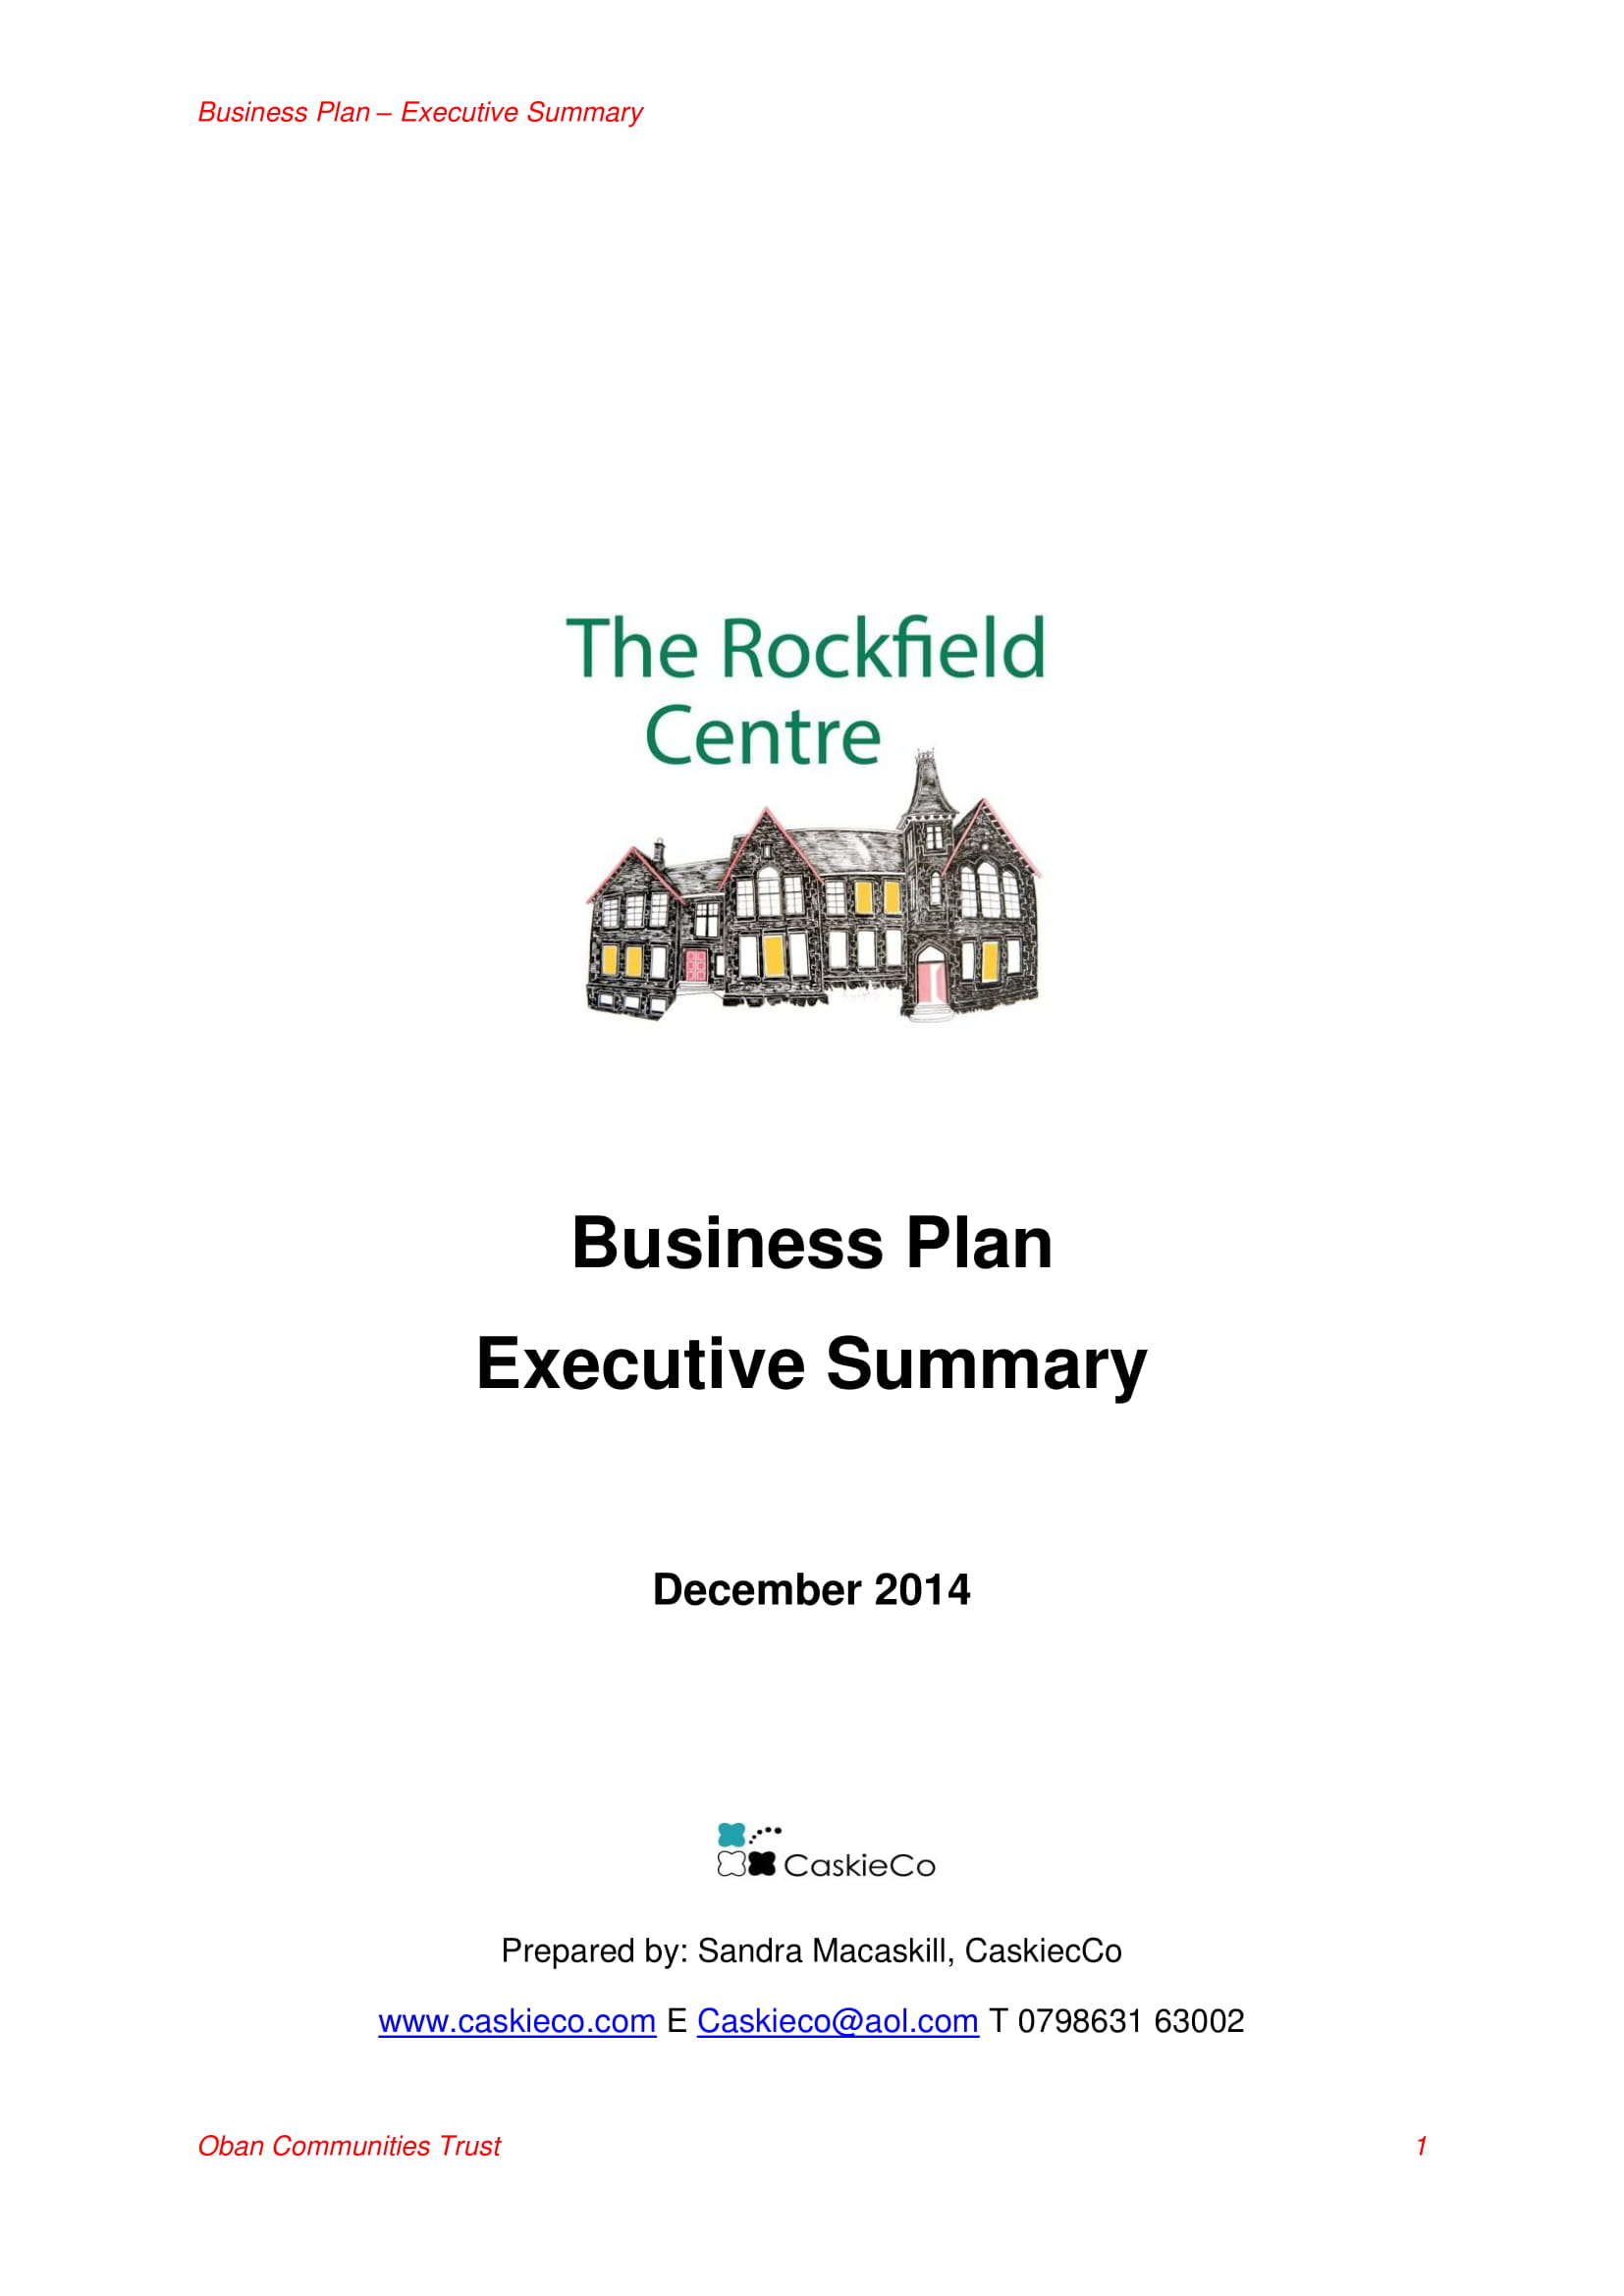 lengthy business plan executive summary example